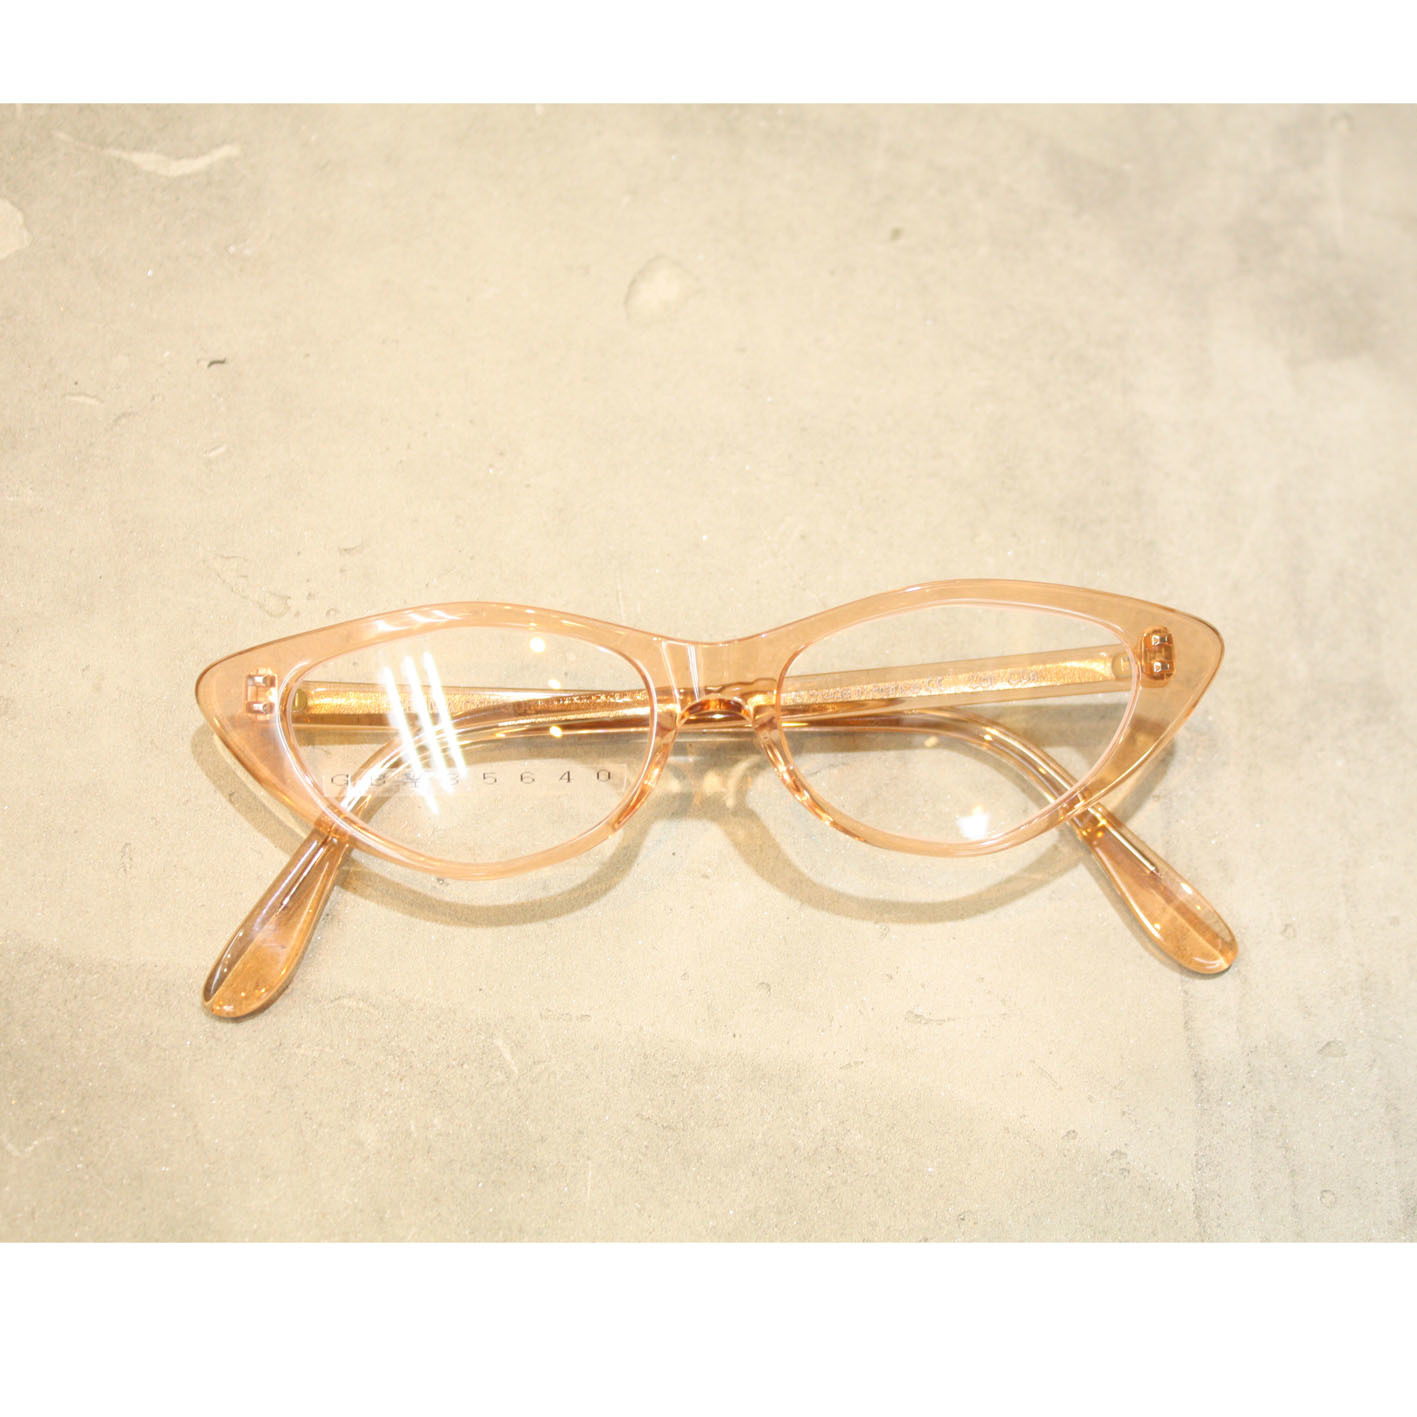 SELIMA OPTIQUE 2016 NEW ARRIVAL_f0208675_22295802.jpg